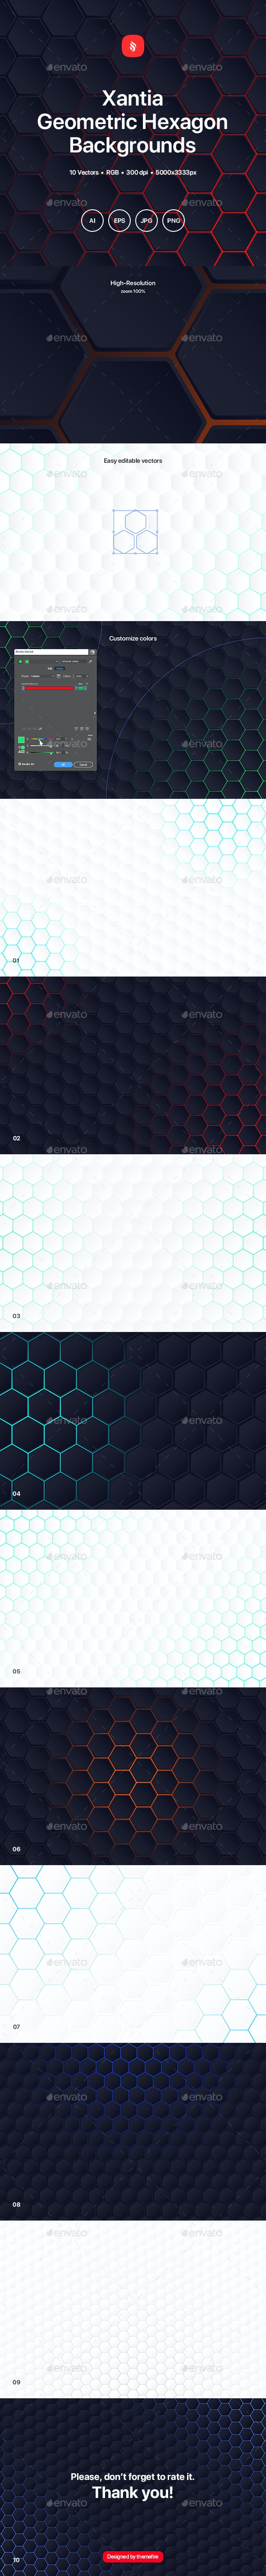 Xantia - Geometric Hexagon Backgrounds - Patterns Backgrounds